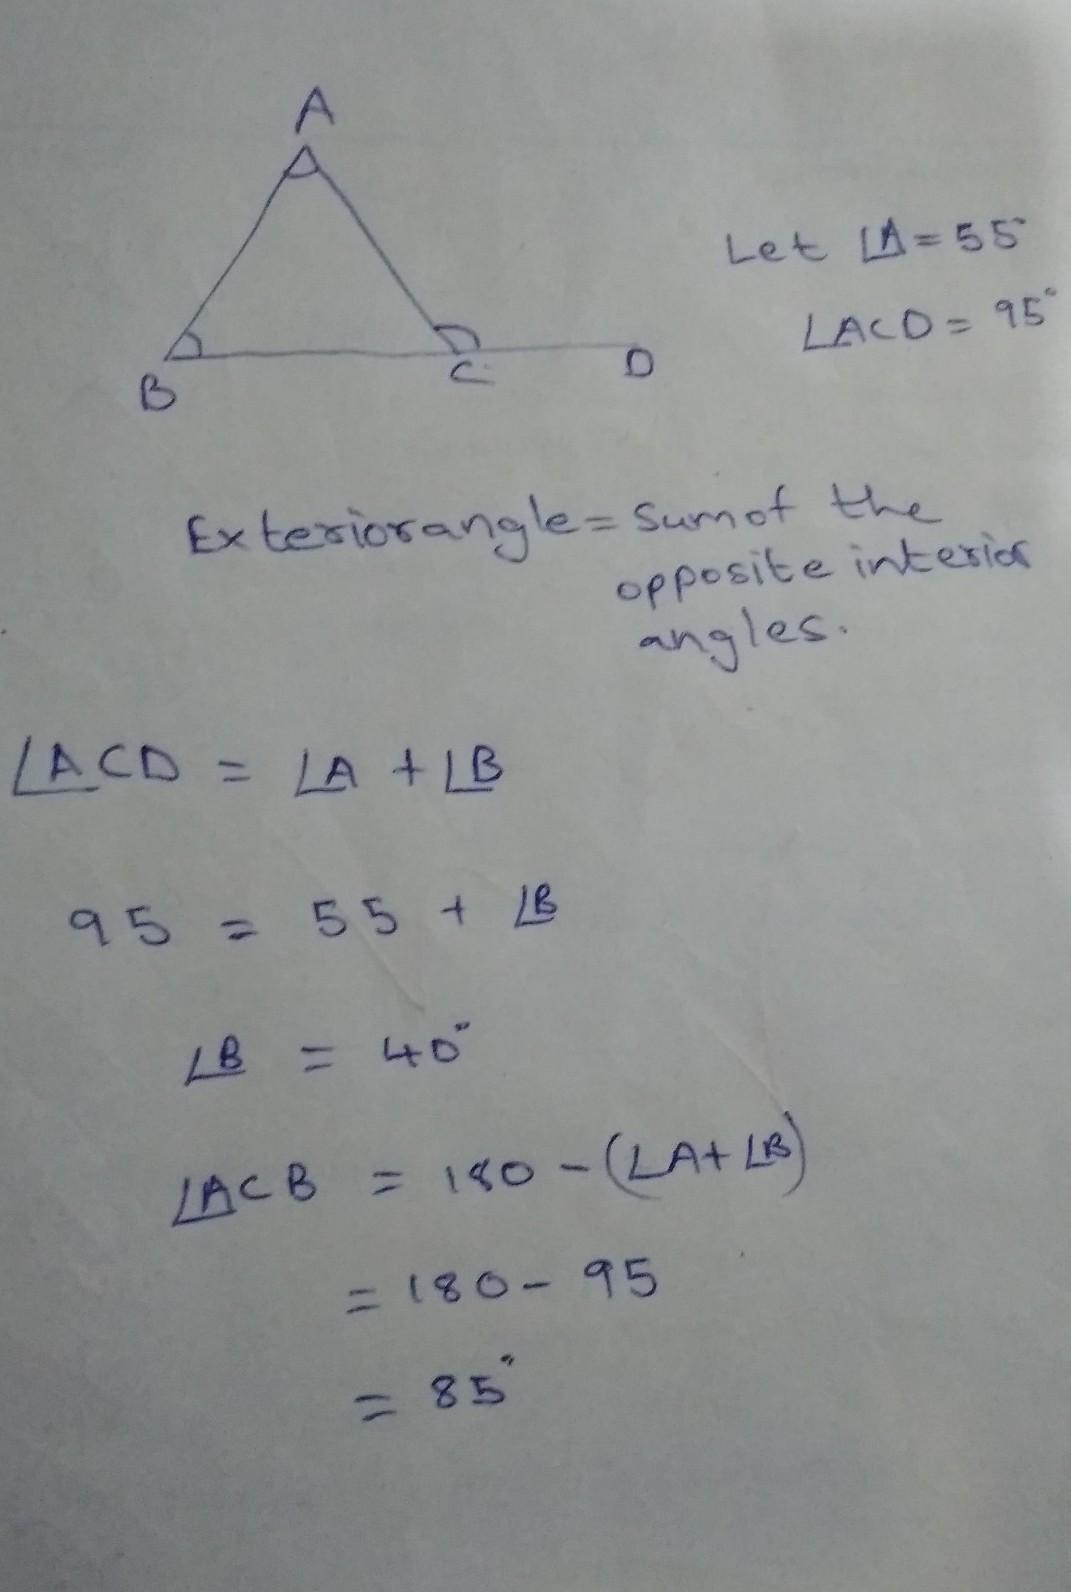 In A Triangle An Exterior Angle Is 95 And Its One Of The